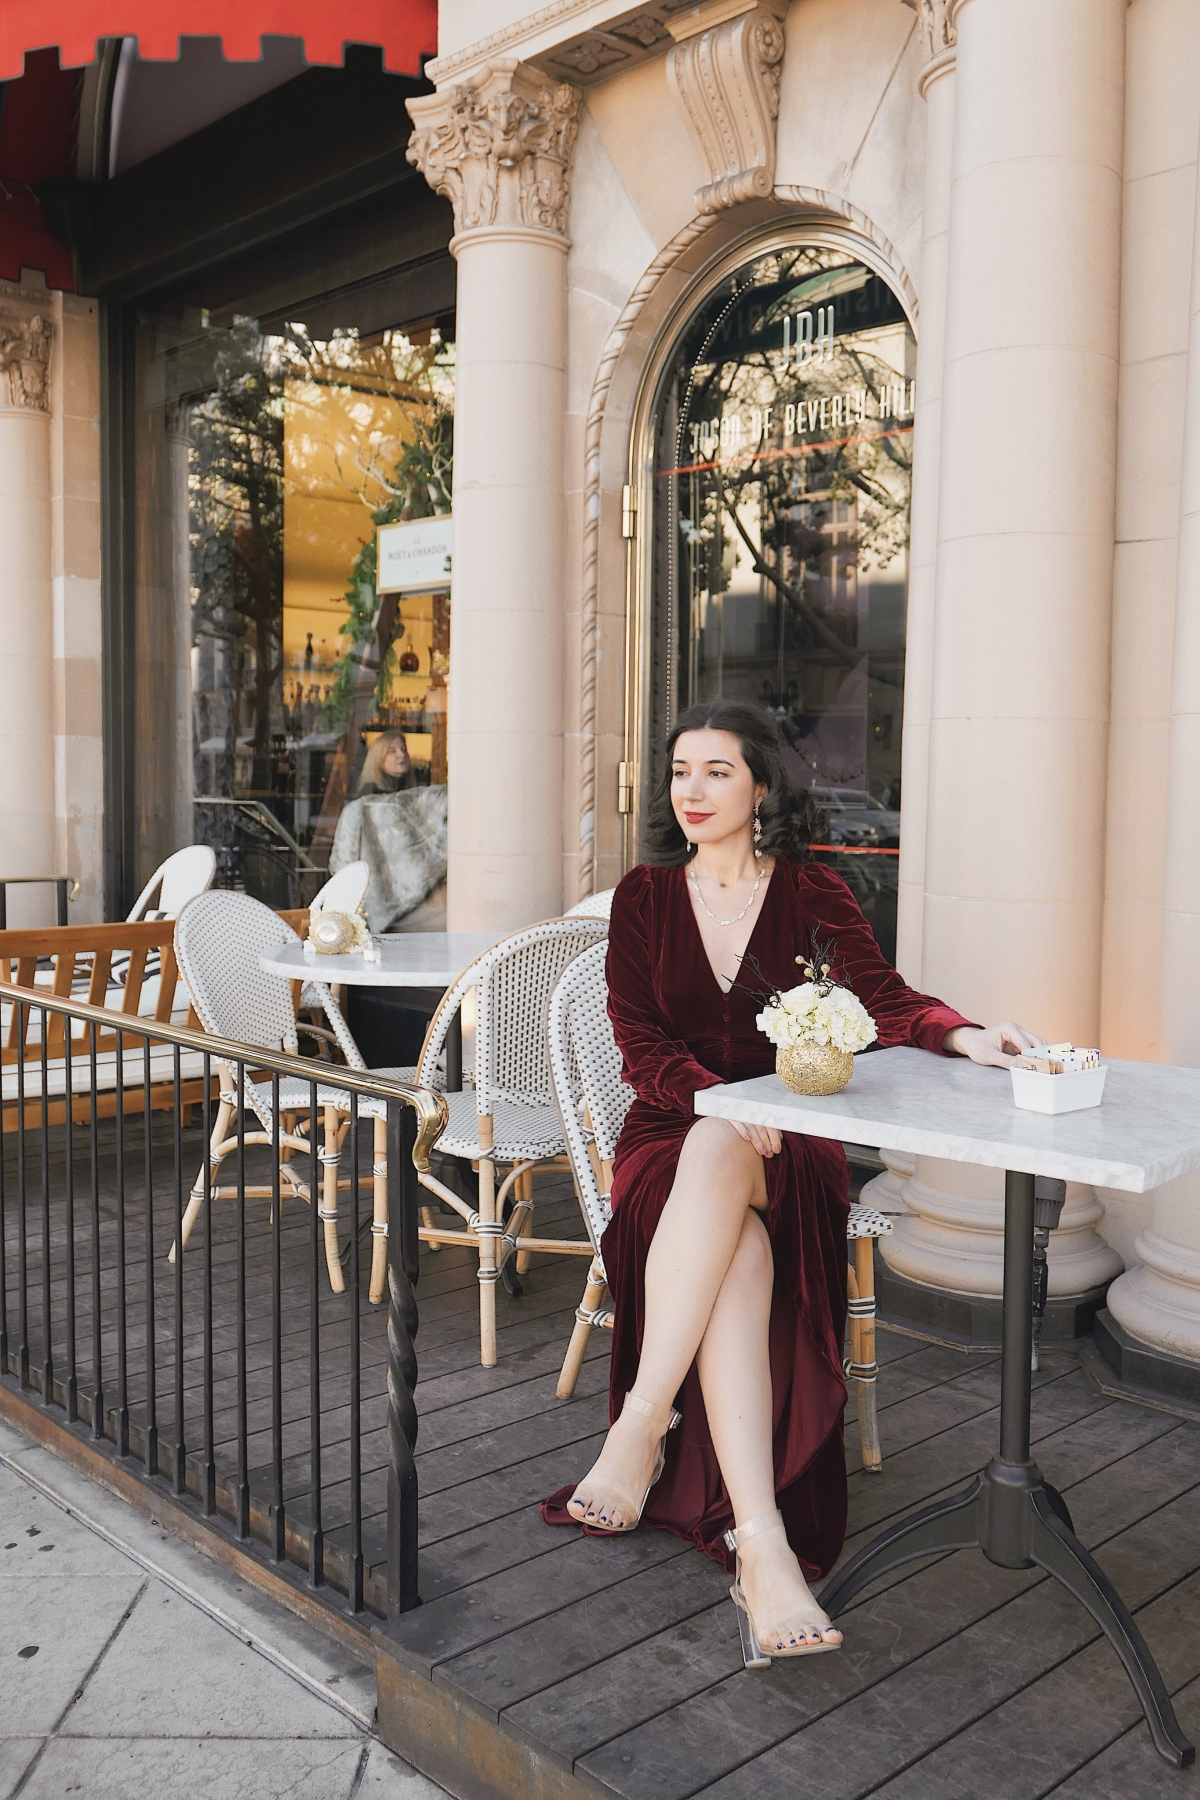 The Beverly Wilshire, red velvet, Christmas dress, Christmas outfit, gown, red velvet, fashion blogger, LA blogger, Beverly Hills, Christmas in Beverly Hills, Christmas in Los Angeles, high fashion, luxury, Edwardian, vintage, rhinestone necklace, rhinestone earrings, Nanamacs, Jeffrey Campbell shoes, curly hair, red lips